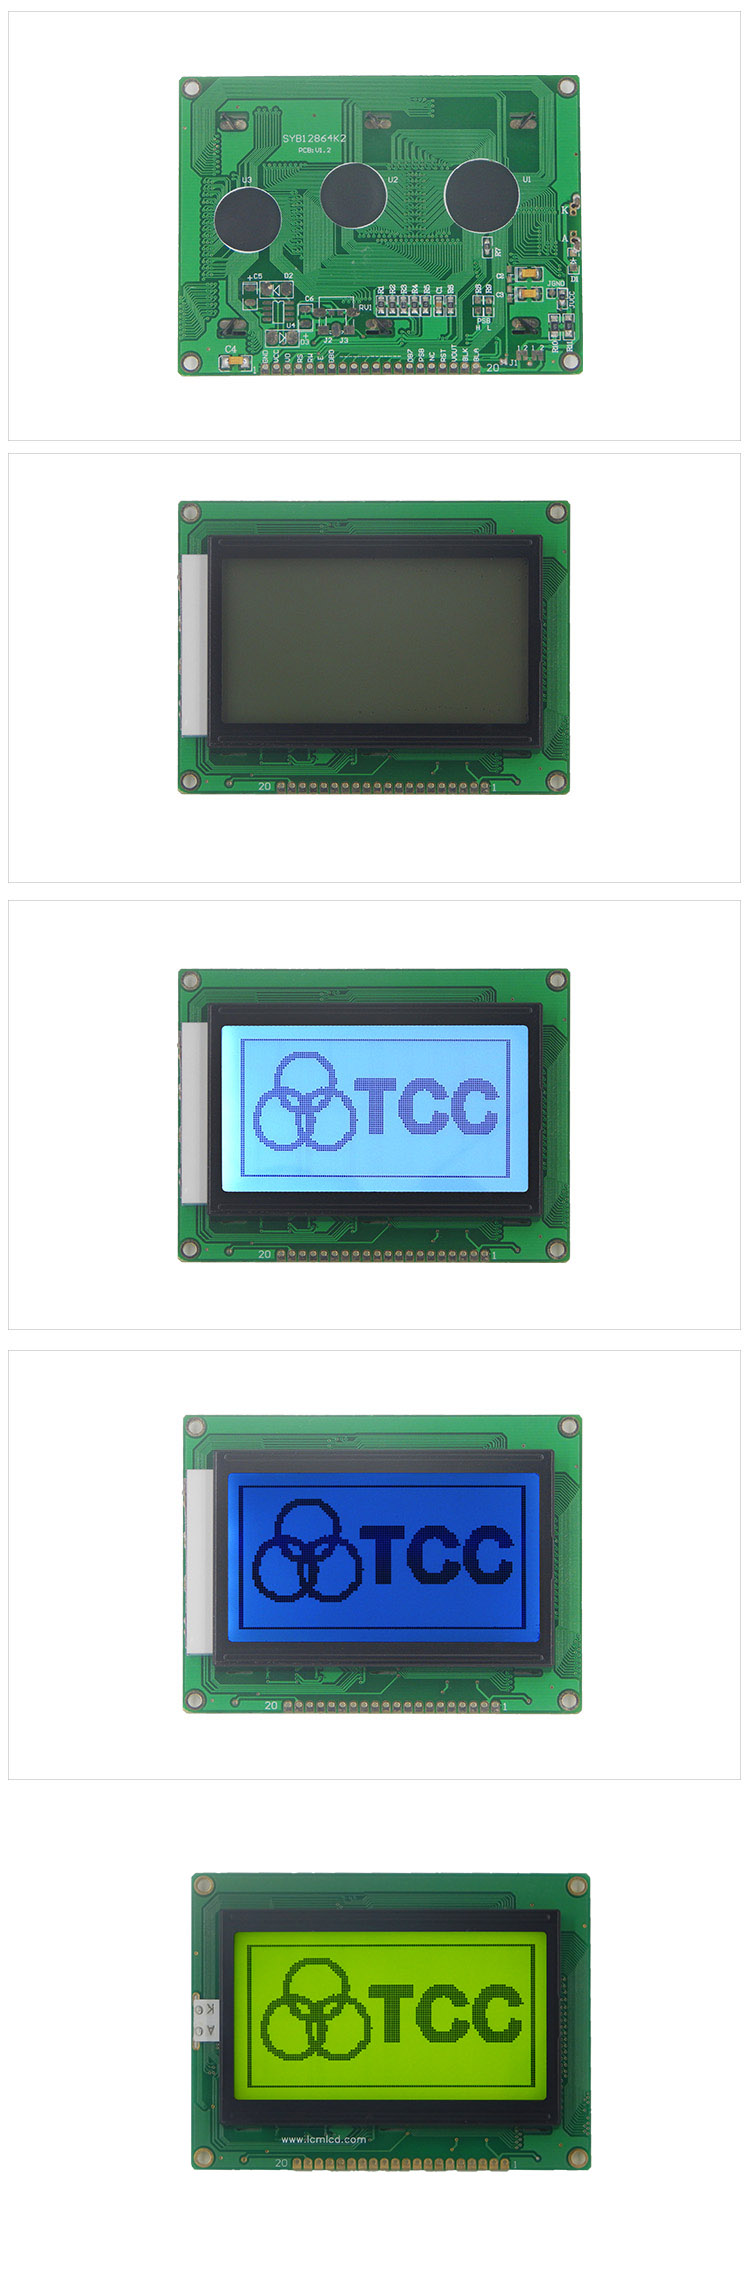 TCC shenzhen 12864 STN/Positive display screen module 3.3v ST7920 20pin 128x64 graphic lcd